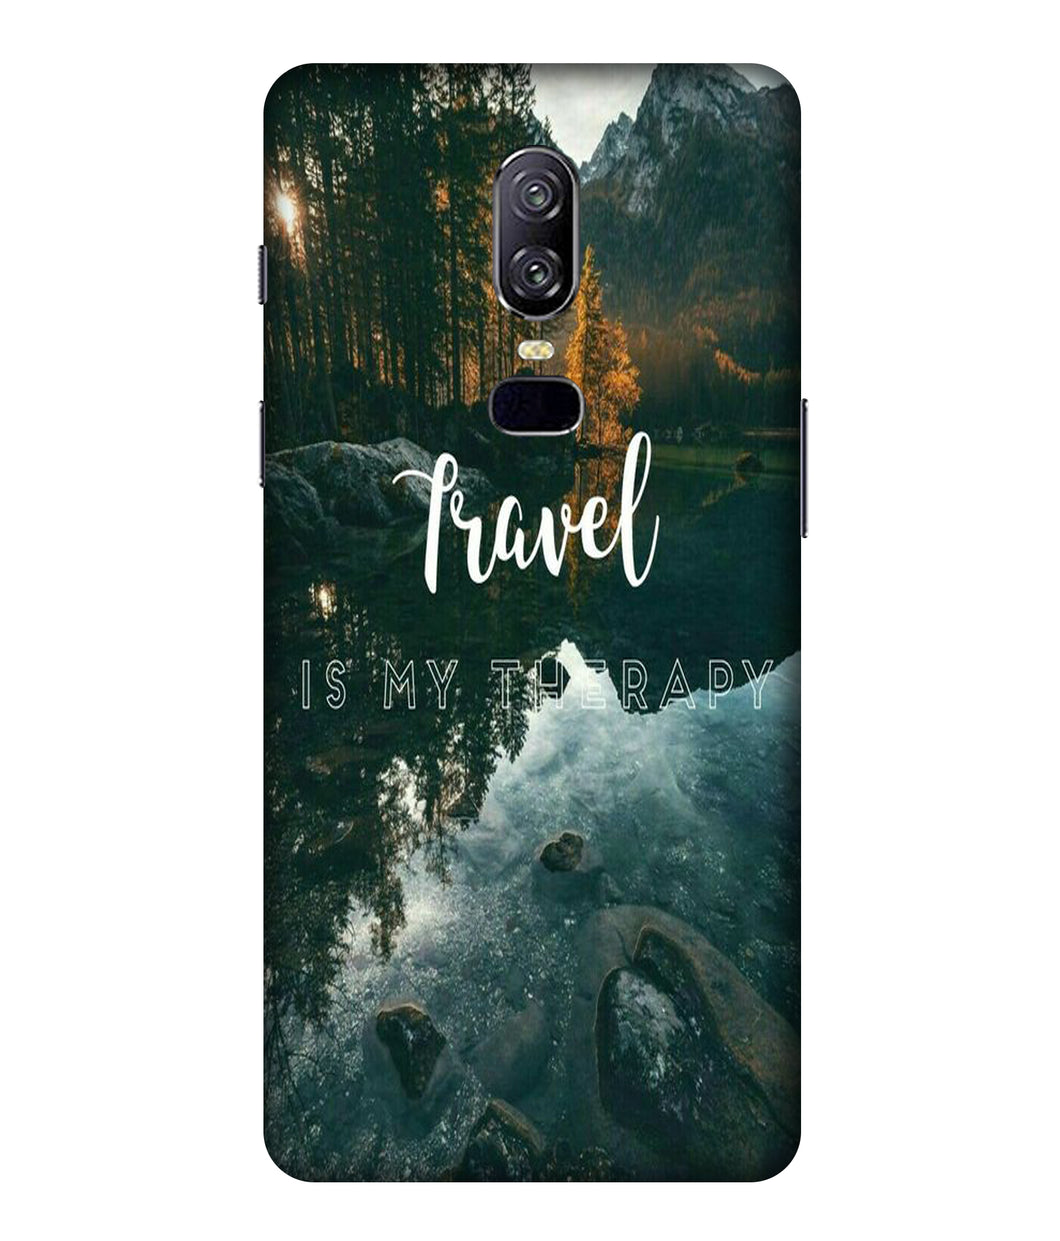 One plus 6 TravelMobile cover